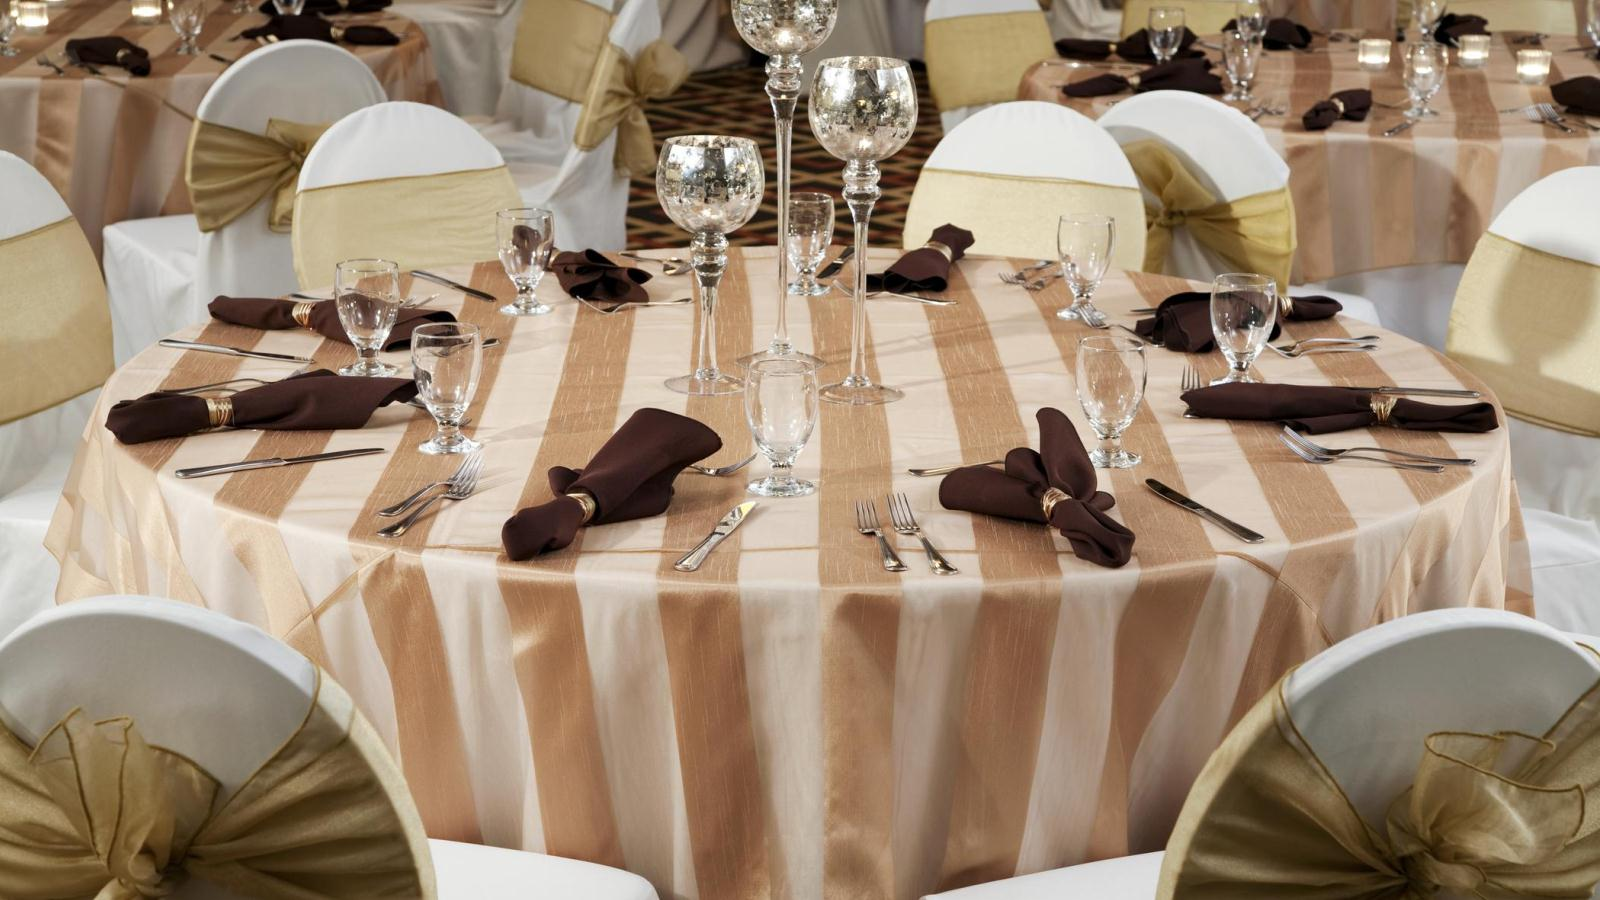 Wedding Venues in AZ - Banquet